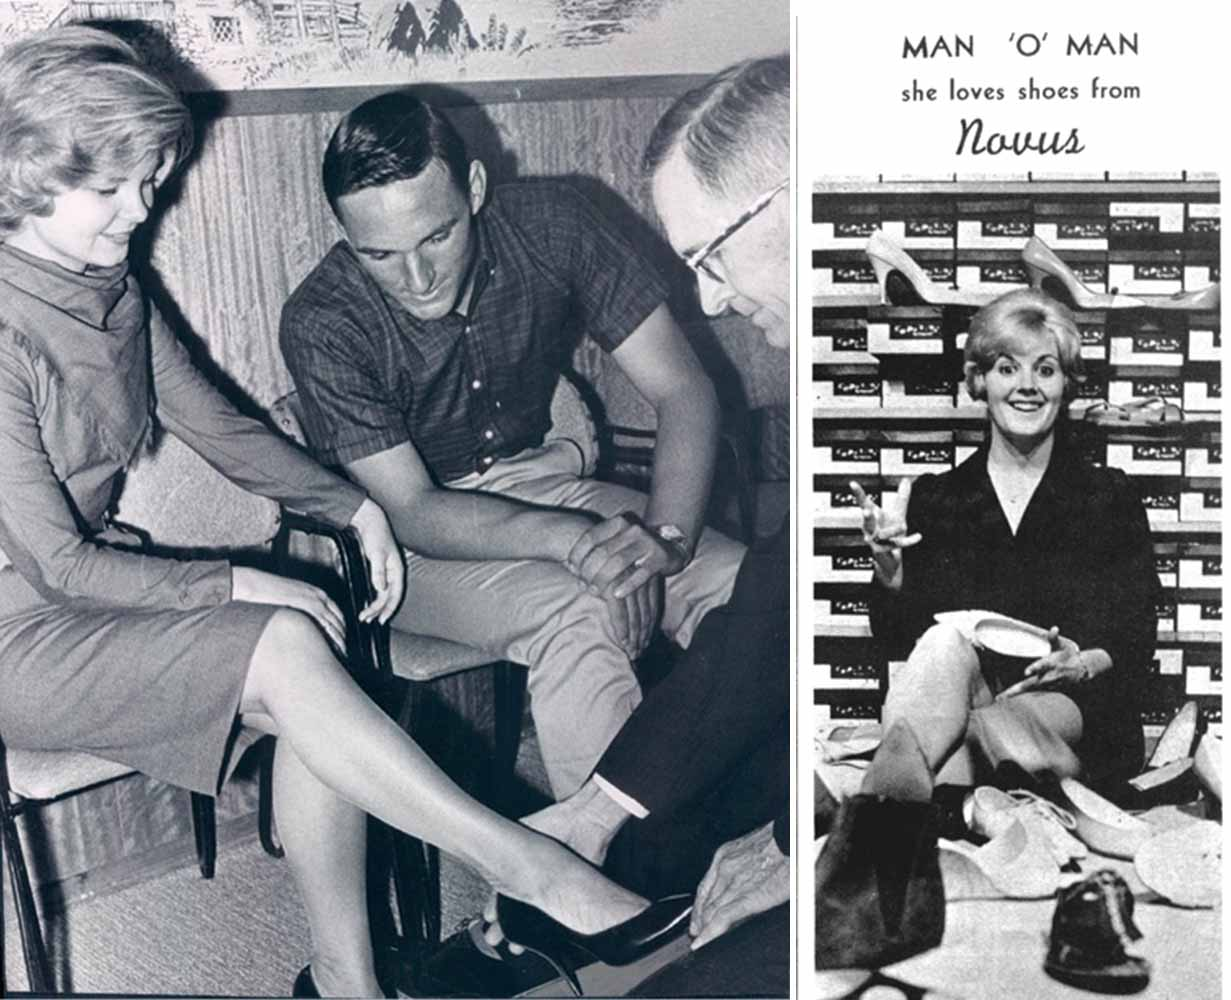 vintage-shoe-shopping.jpg